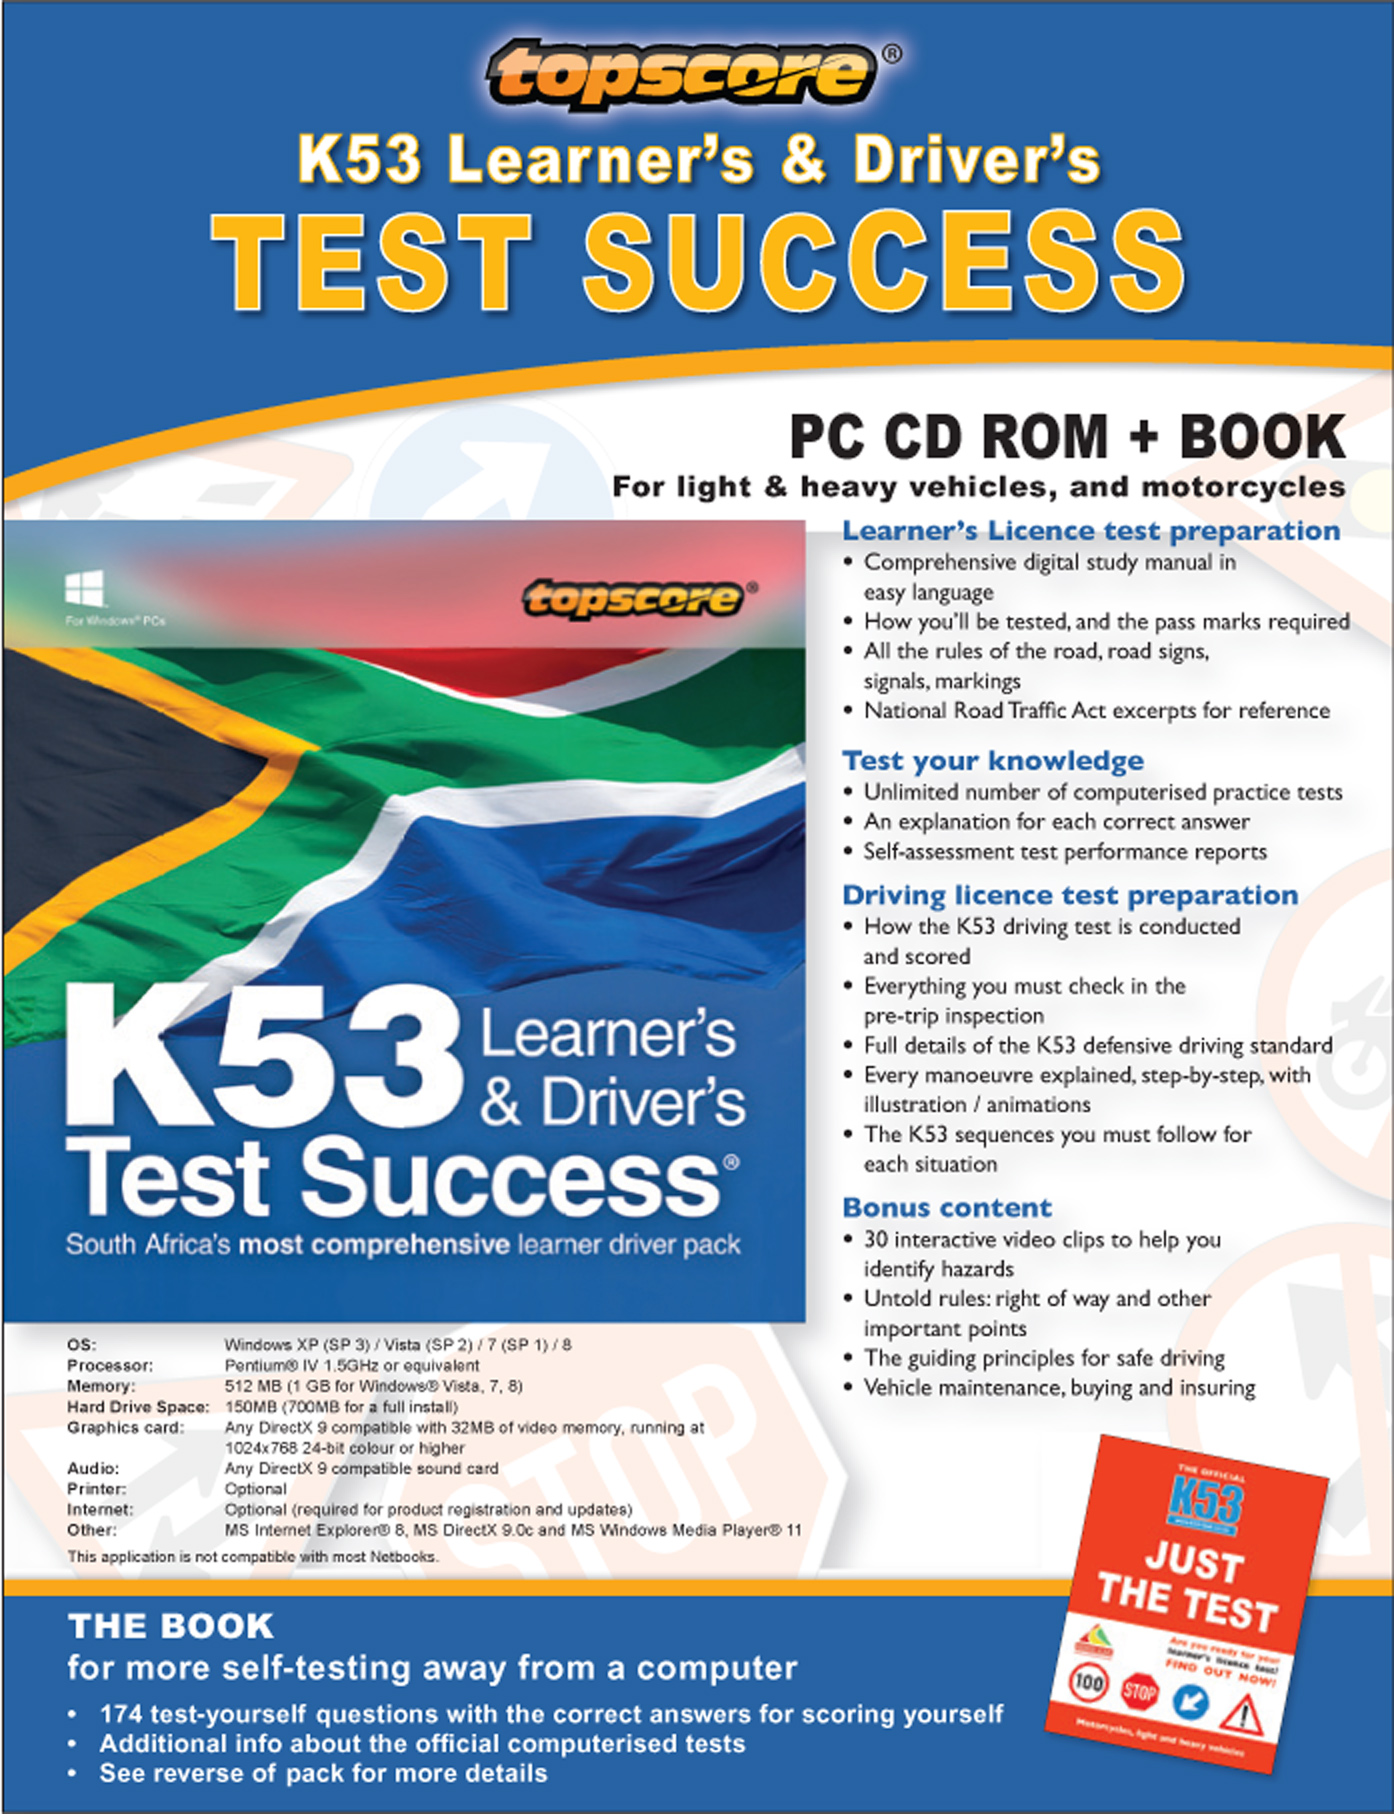 Picture of Topscore K53 learner's & driver's test success